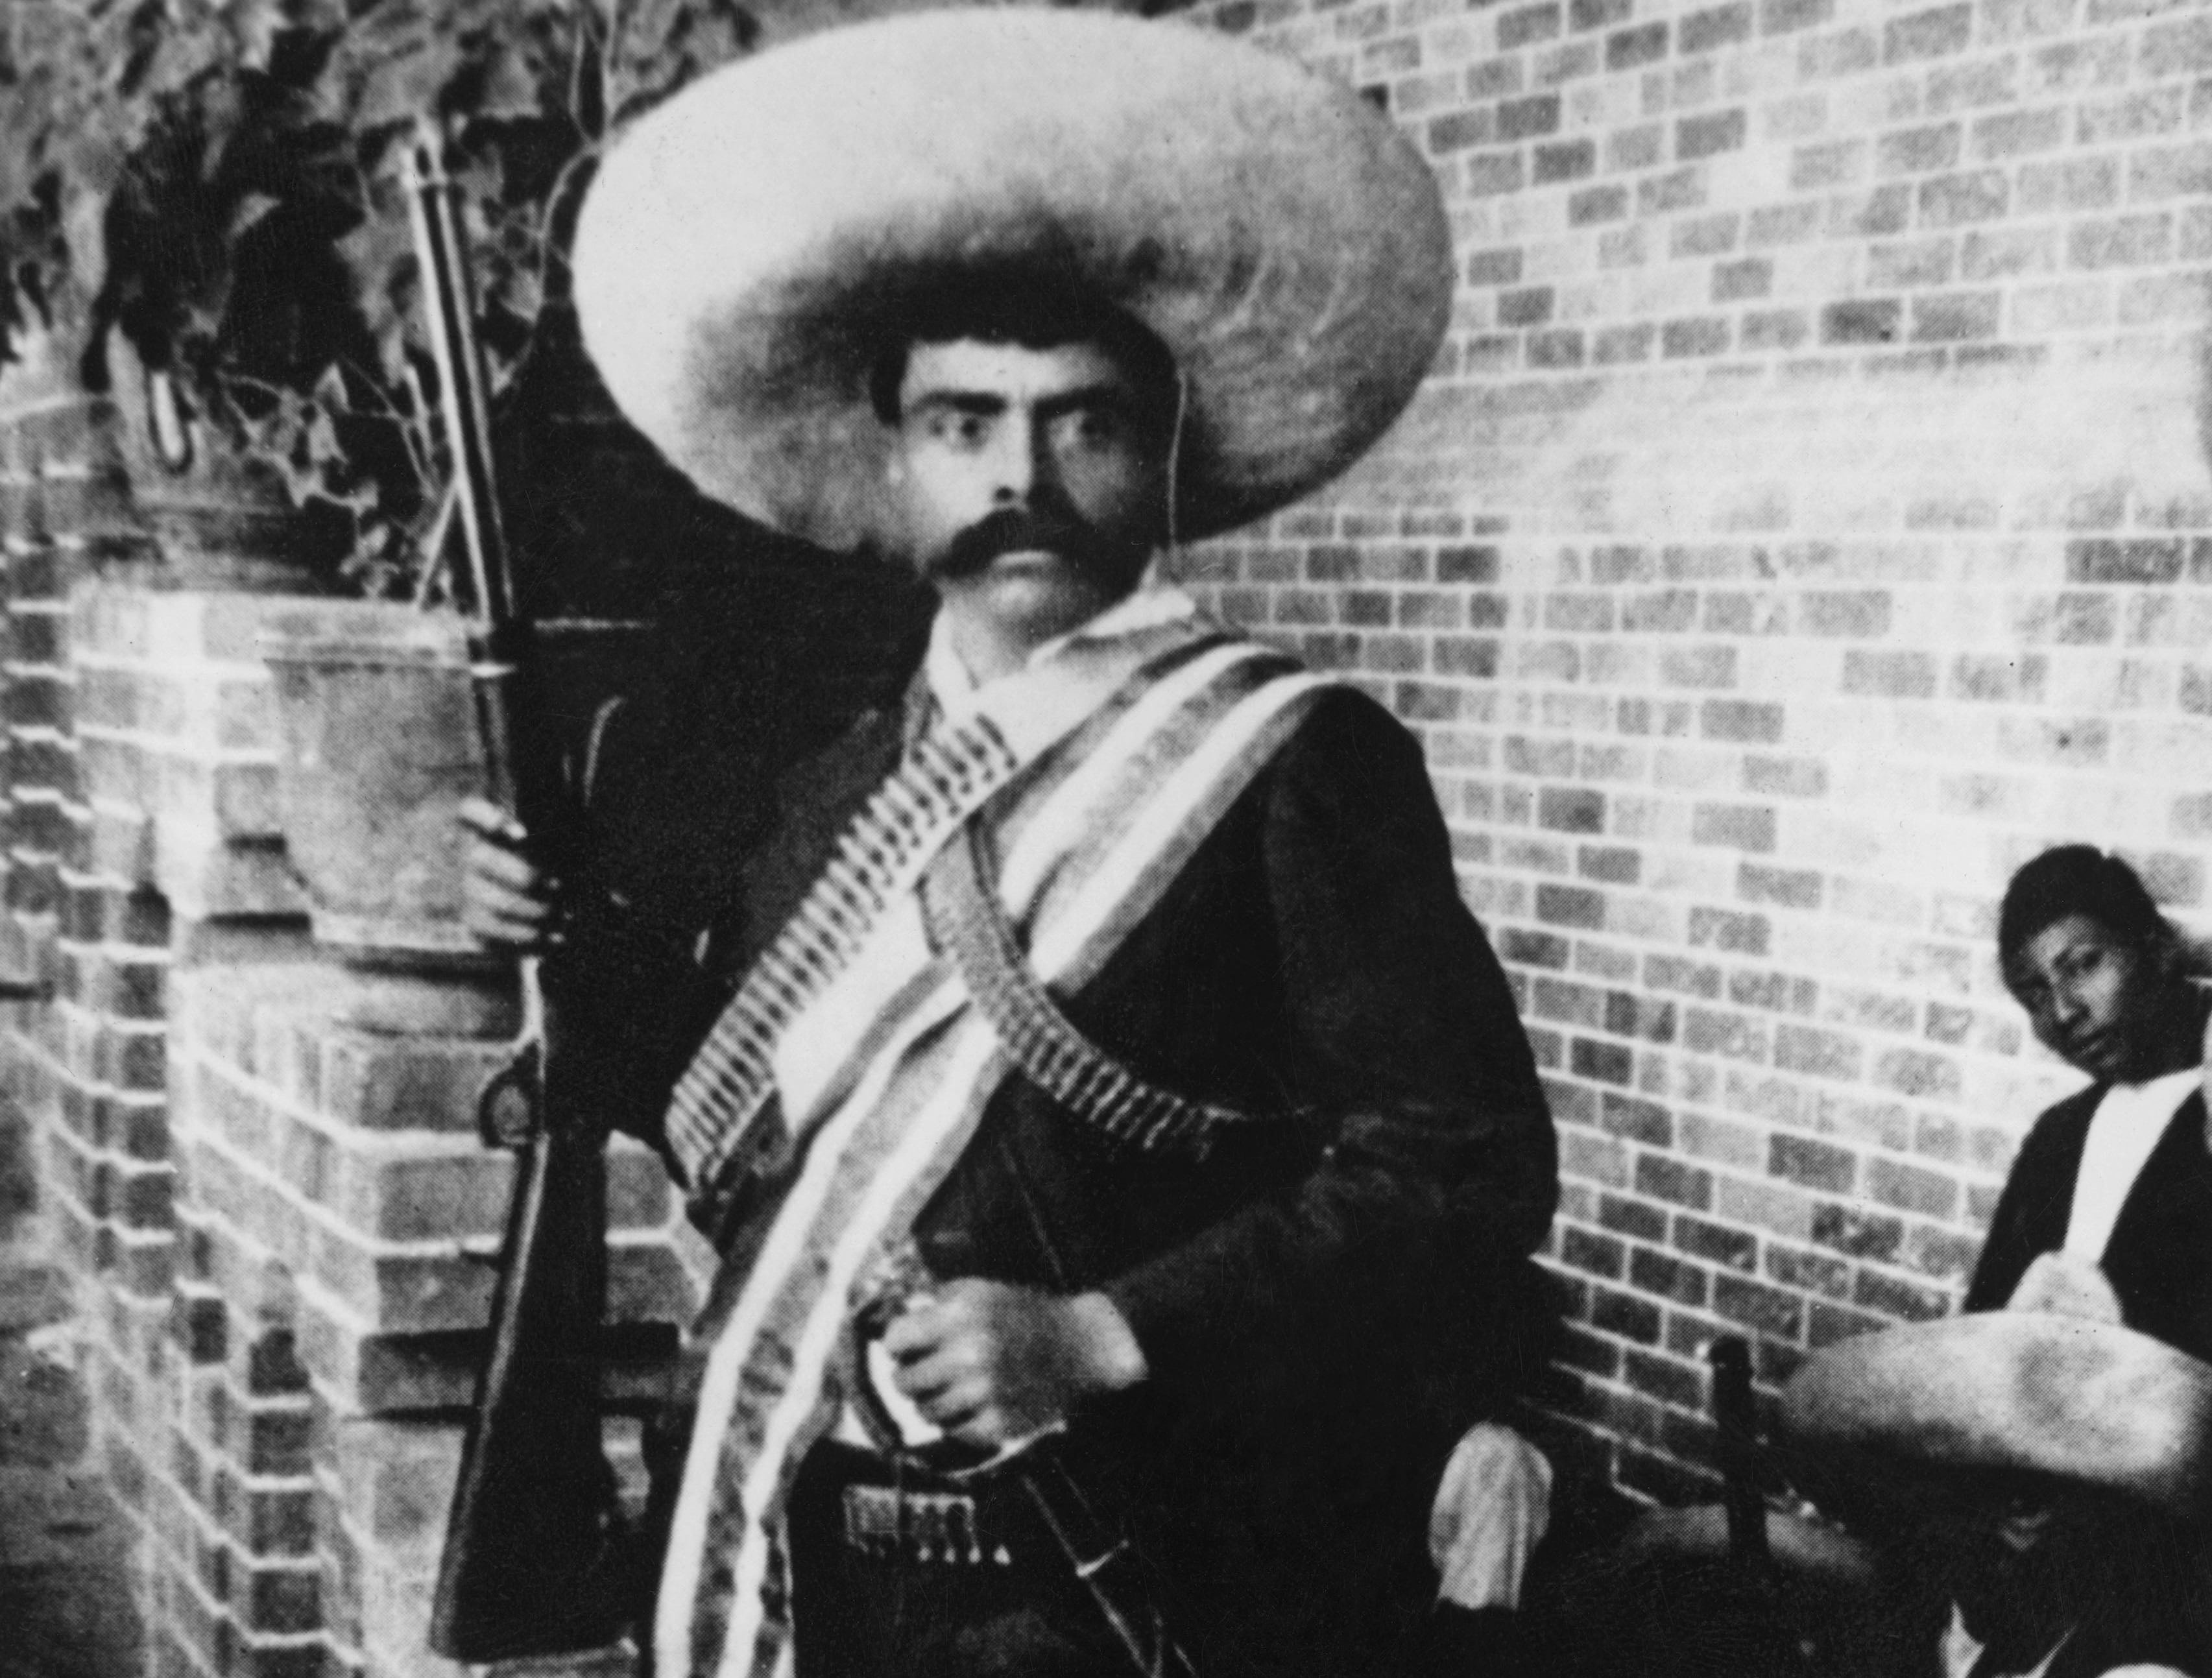 100 Years After Emiliano Zapata's Death, Mexican High School Makes Massive Altar for the Revolutionary